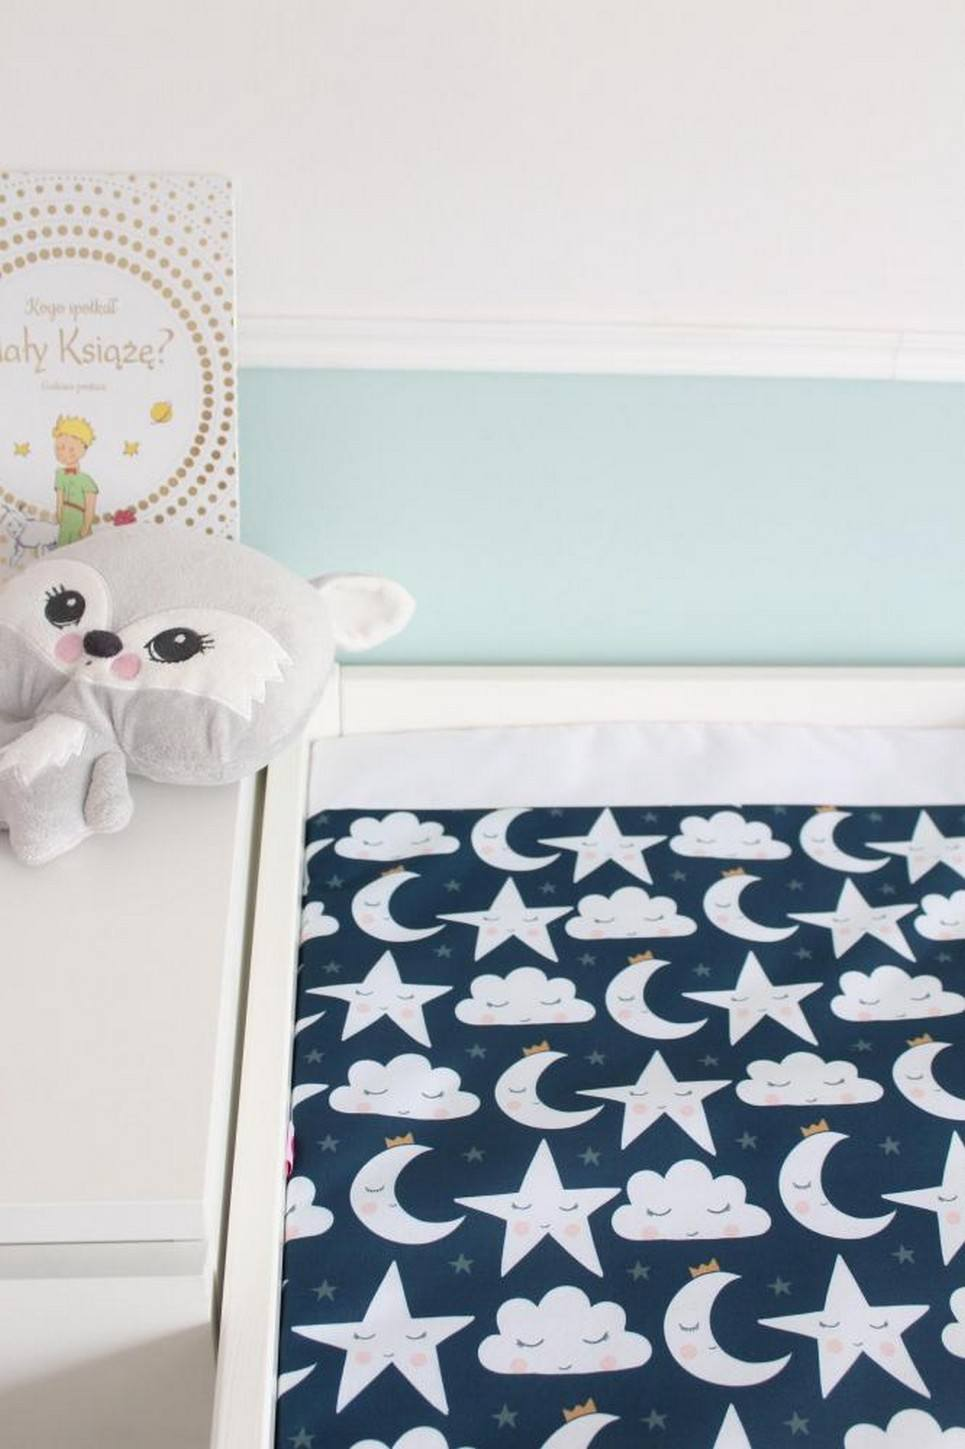 Stars, Clouds and Moons Waterproof Winding Mat